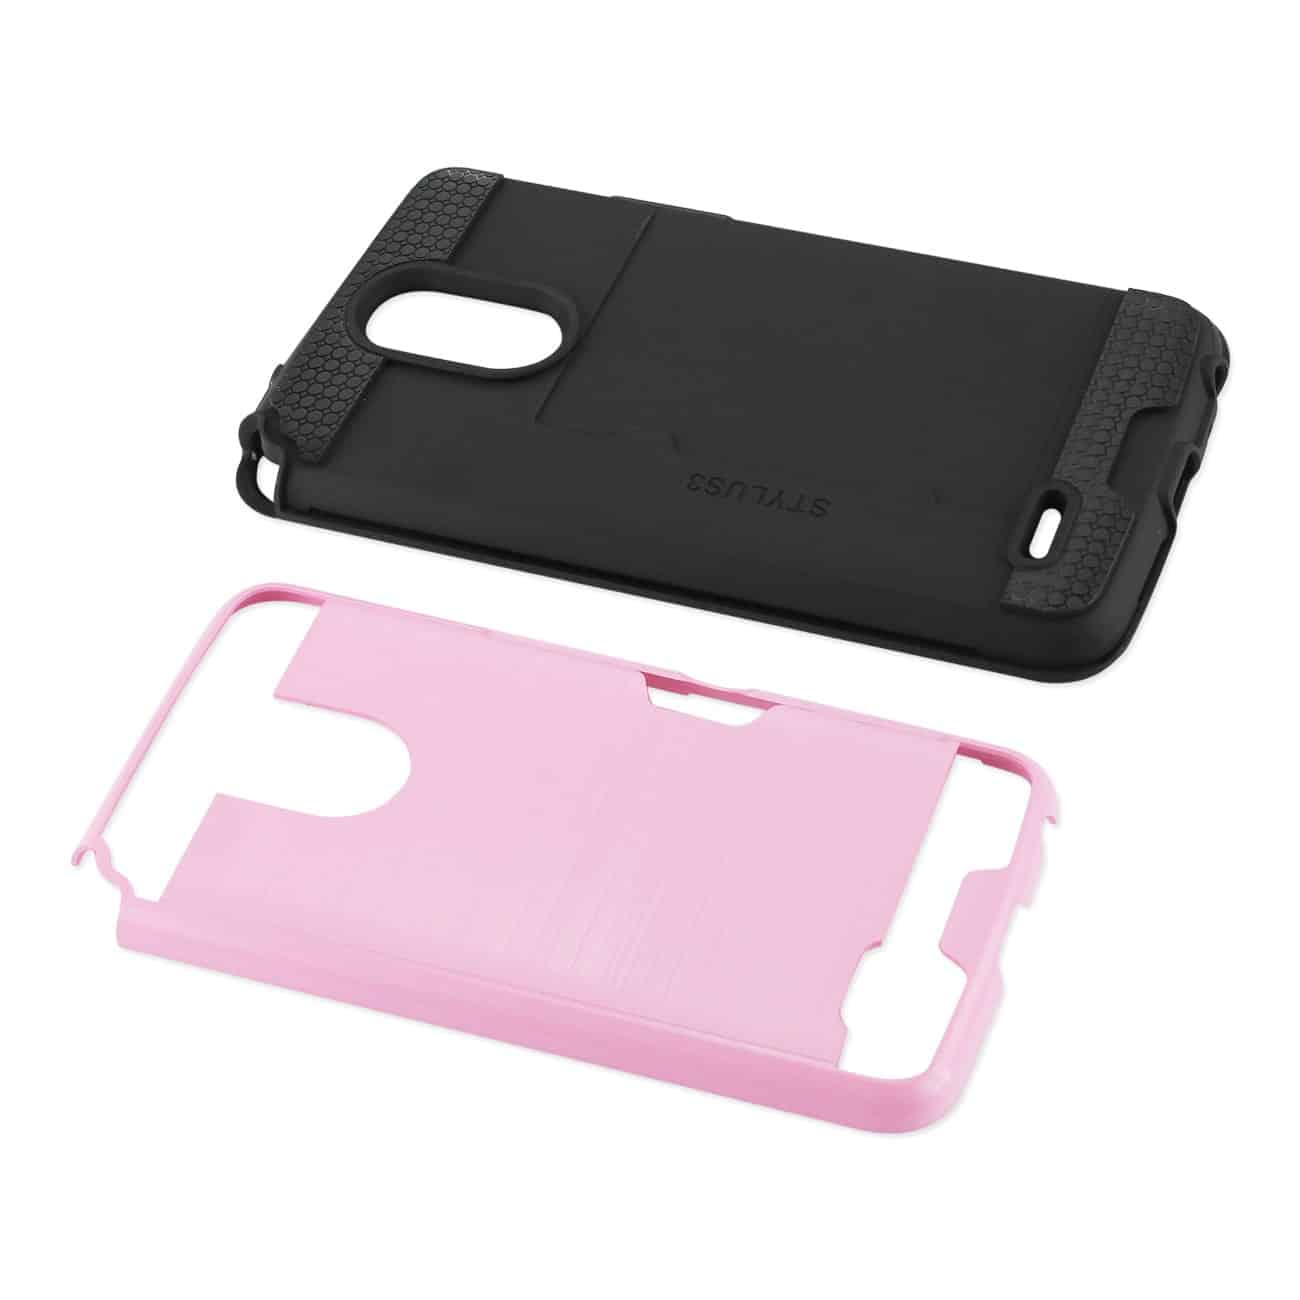 Lg Stylo 3/ Stylus 3 Slim Armor Hybrid Case With Card Holder In Pink